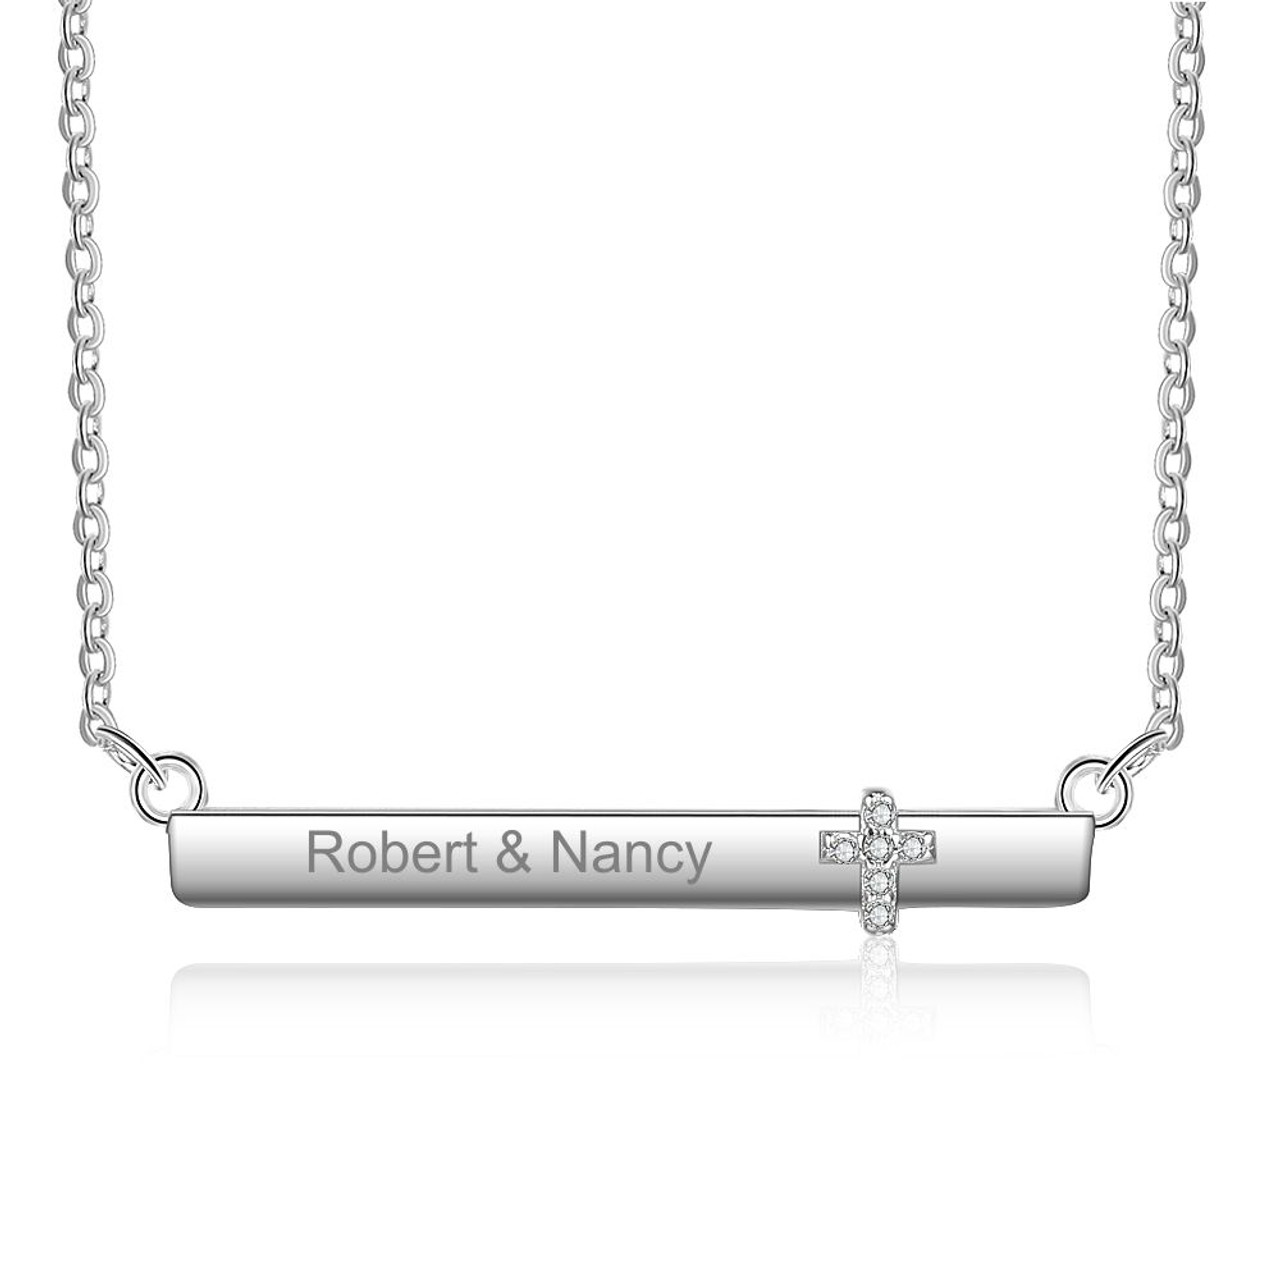 Engraved Necklace New Baby Gifts Silver Bar Necklace